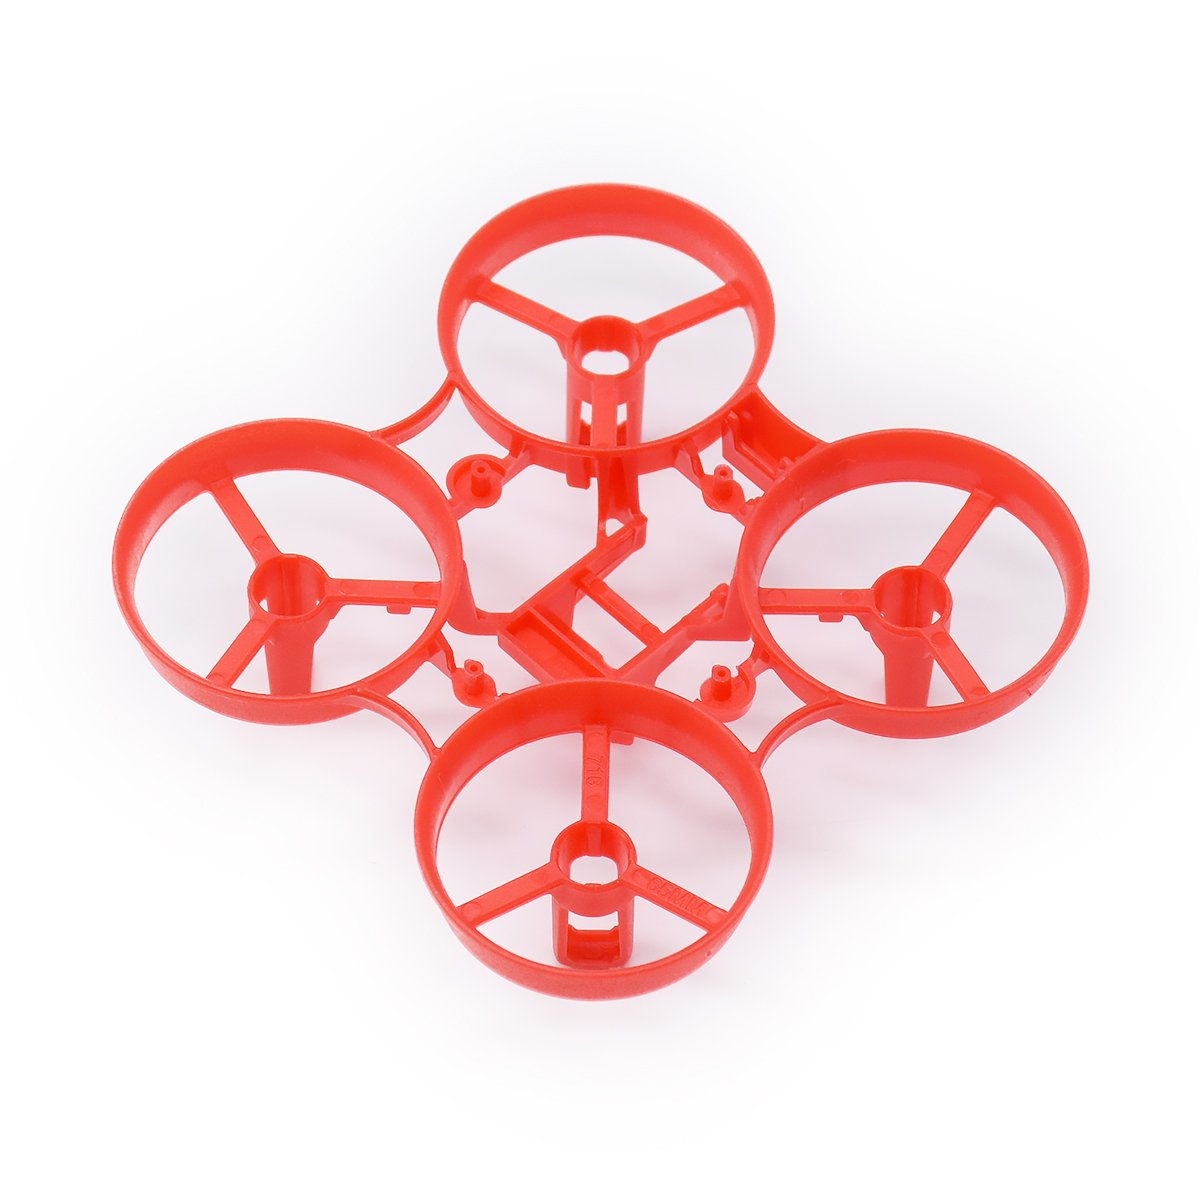 Beta FPV 7x16mm Motor用65mm Tiny Whoop V3 Frame(Red)